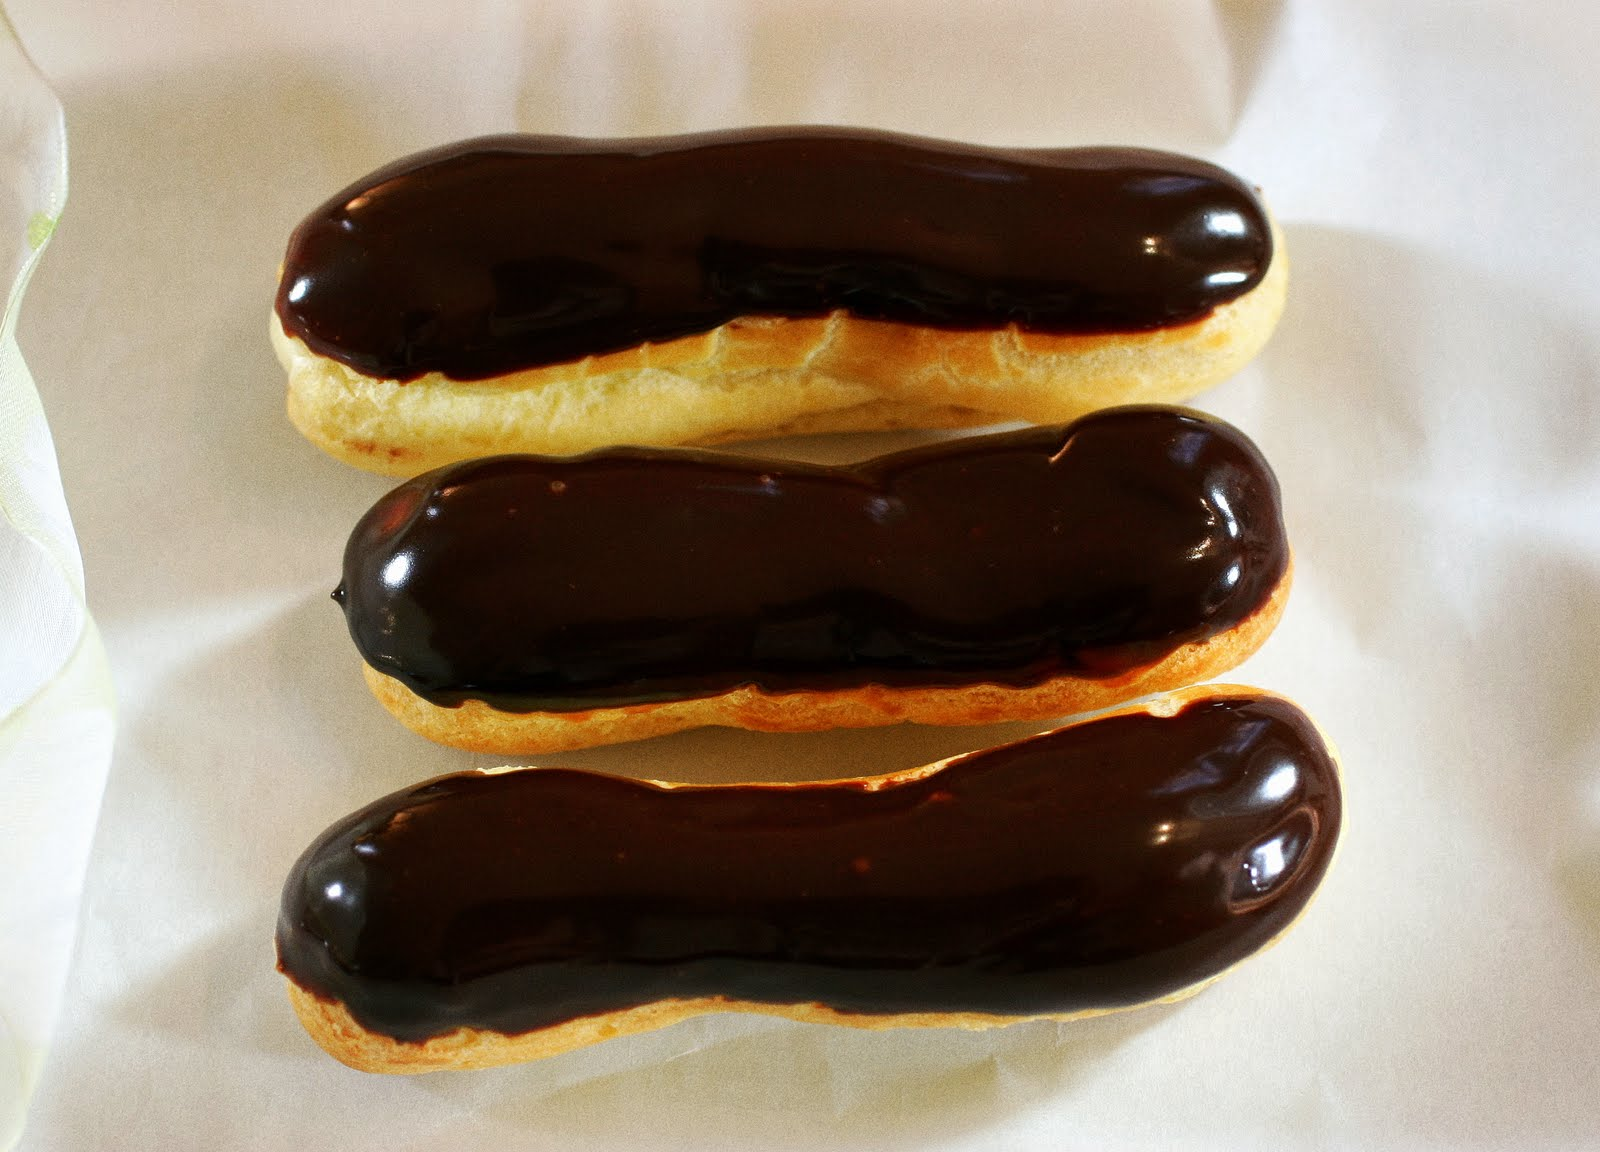 Tish Boyle Sweet Dreams: Chocolate Glazed Vanilla Eclairs